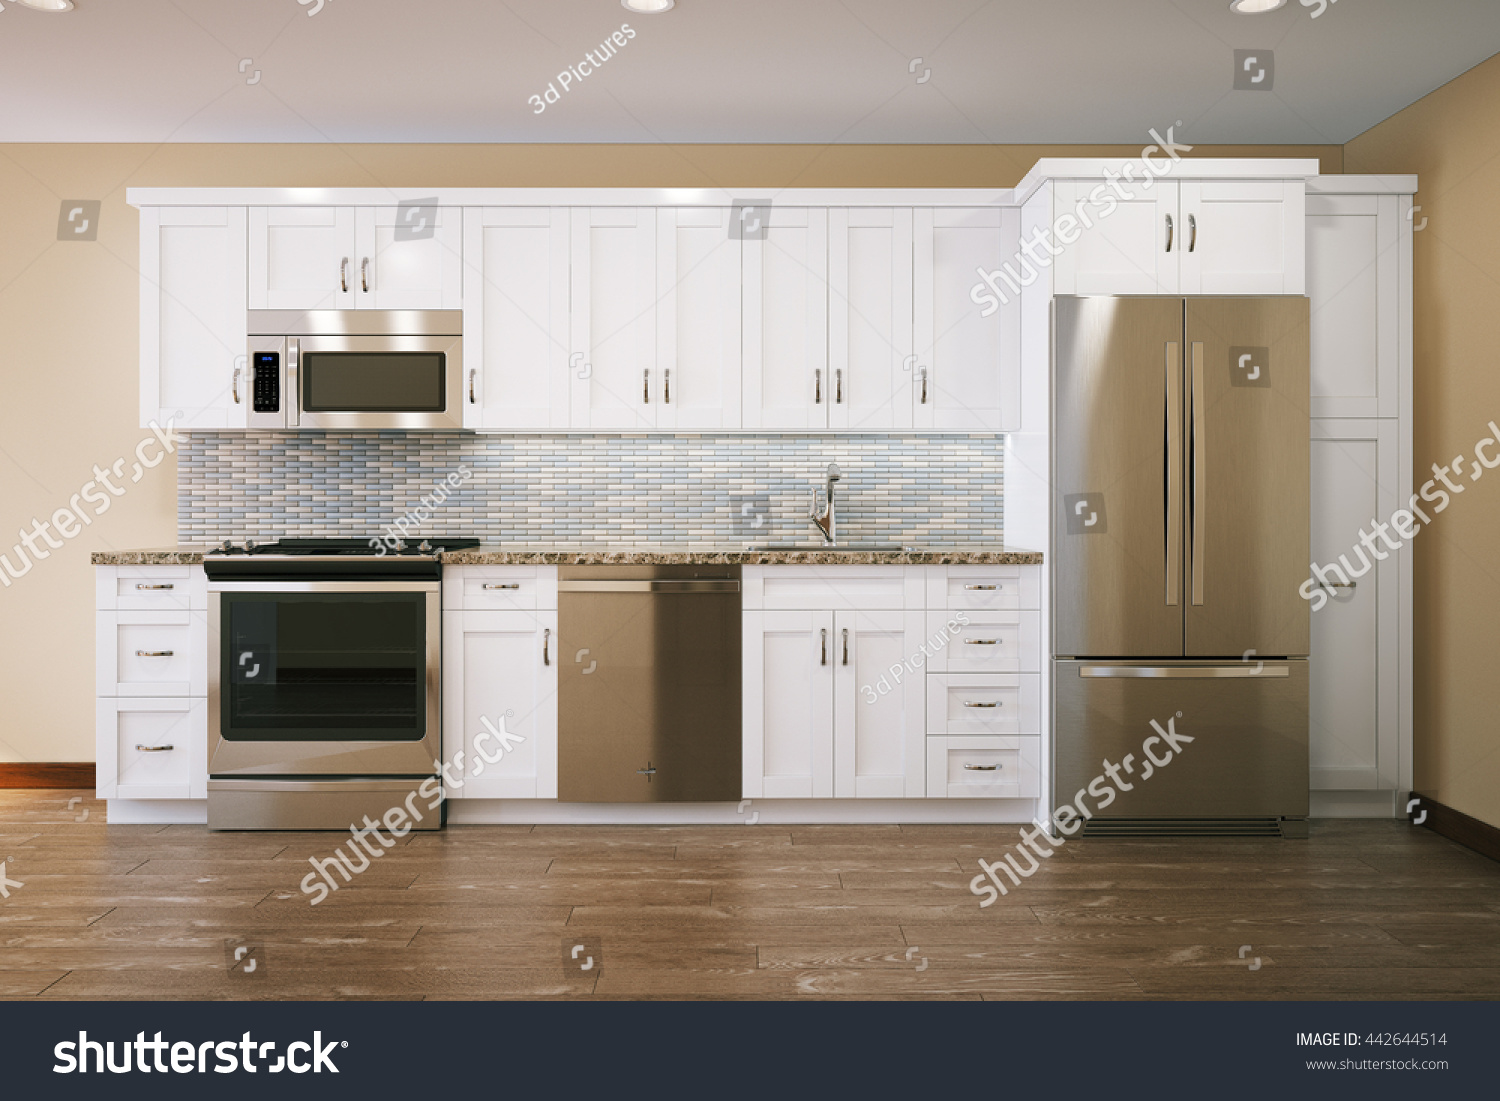 Parquet Flooring Kitchen White Furniture Kitchen Interior Design Parquet Stock Illustration